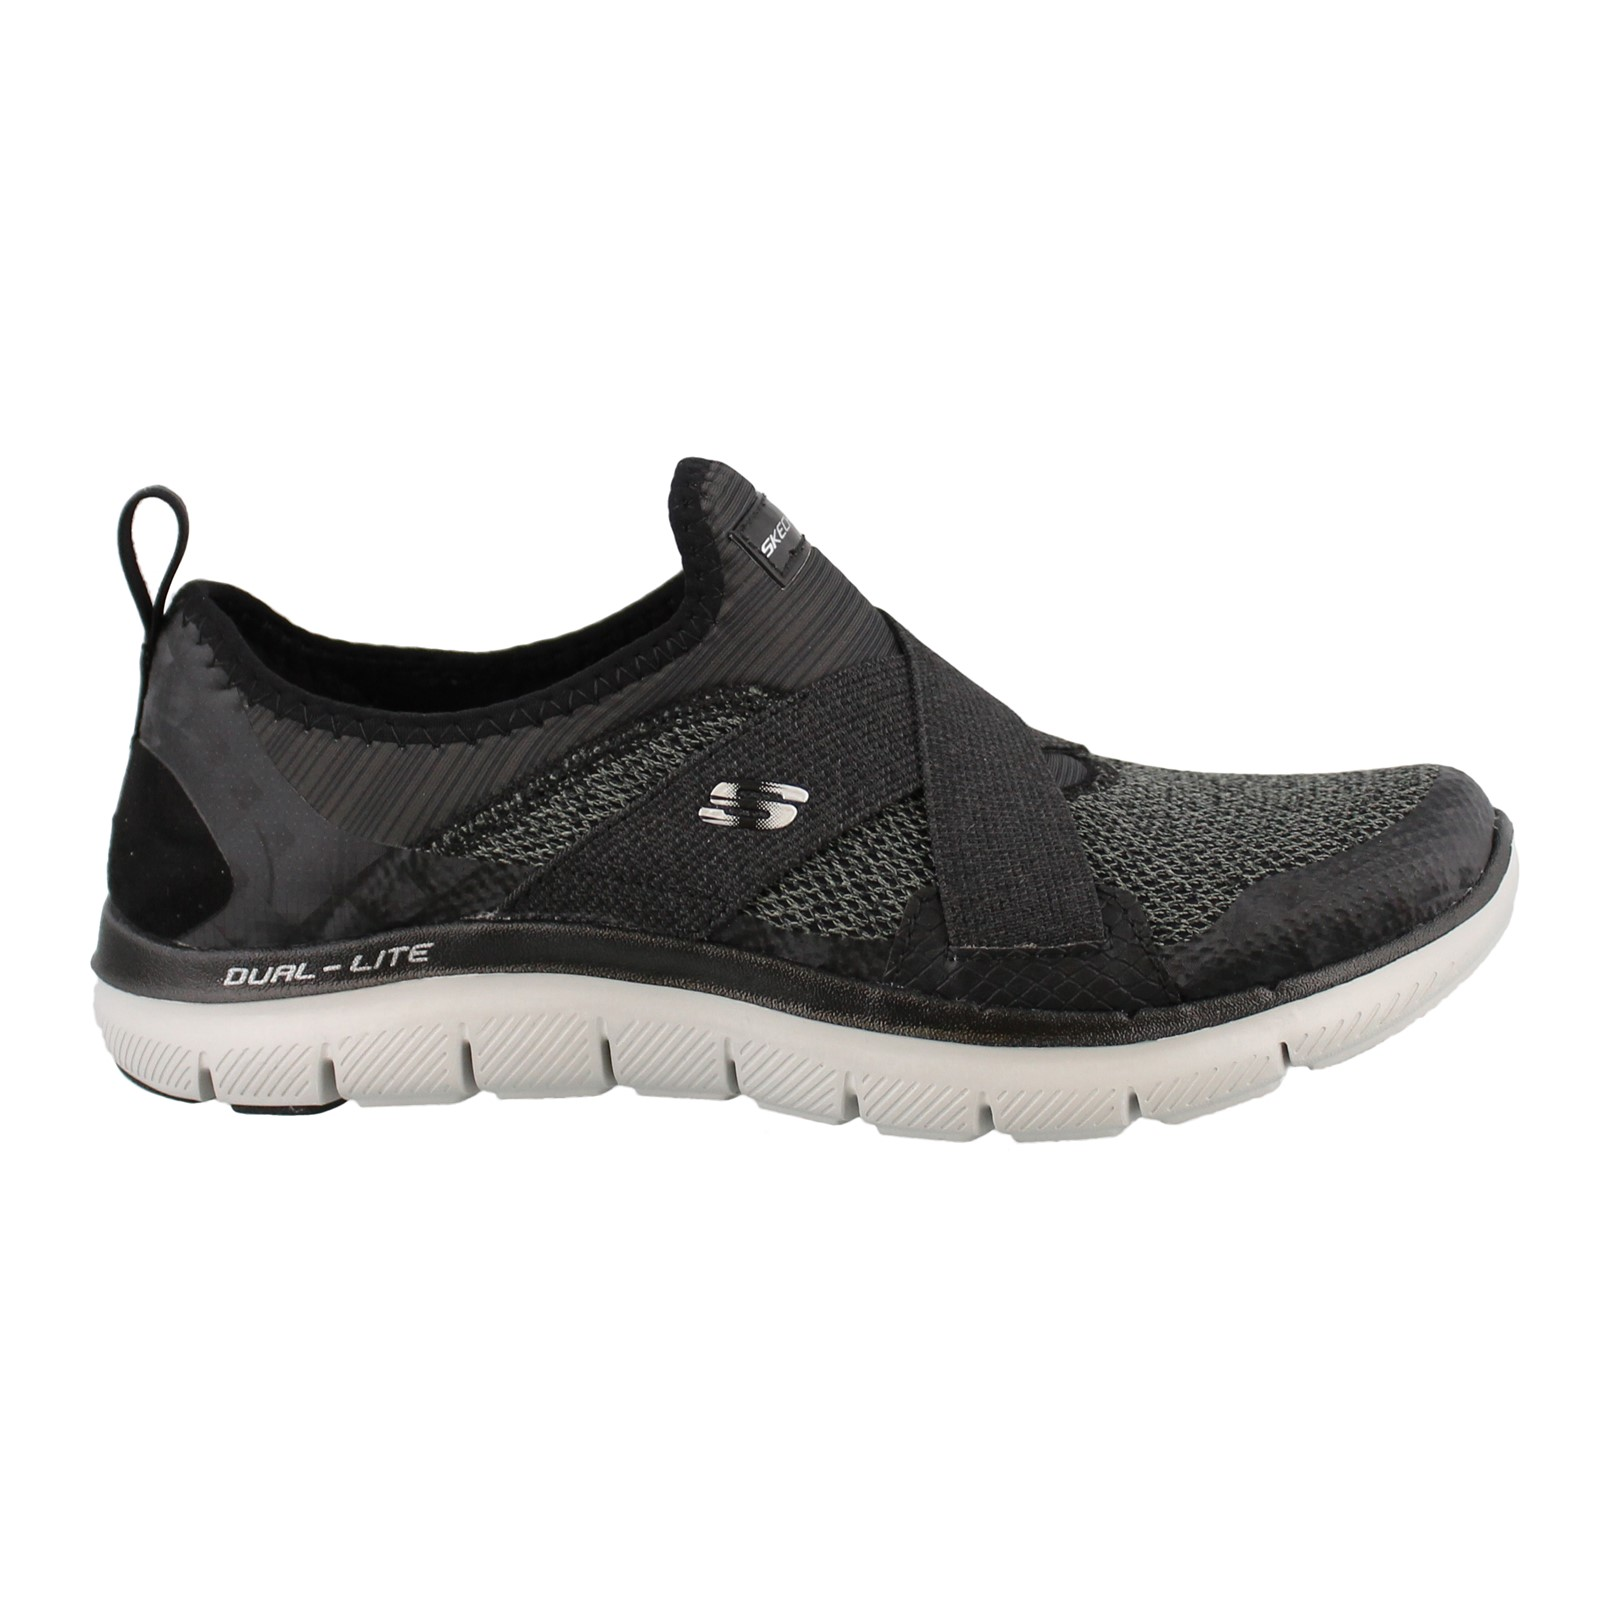 Women's Skechers, Flex Appeal 2.0 Slip on Shoe